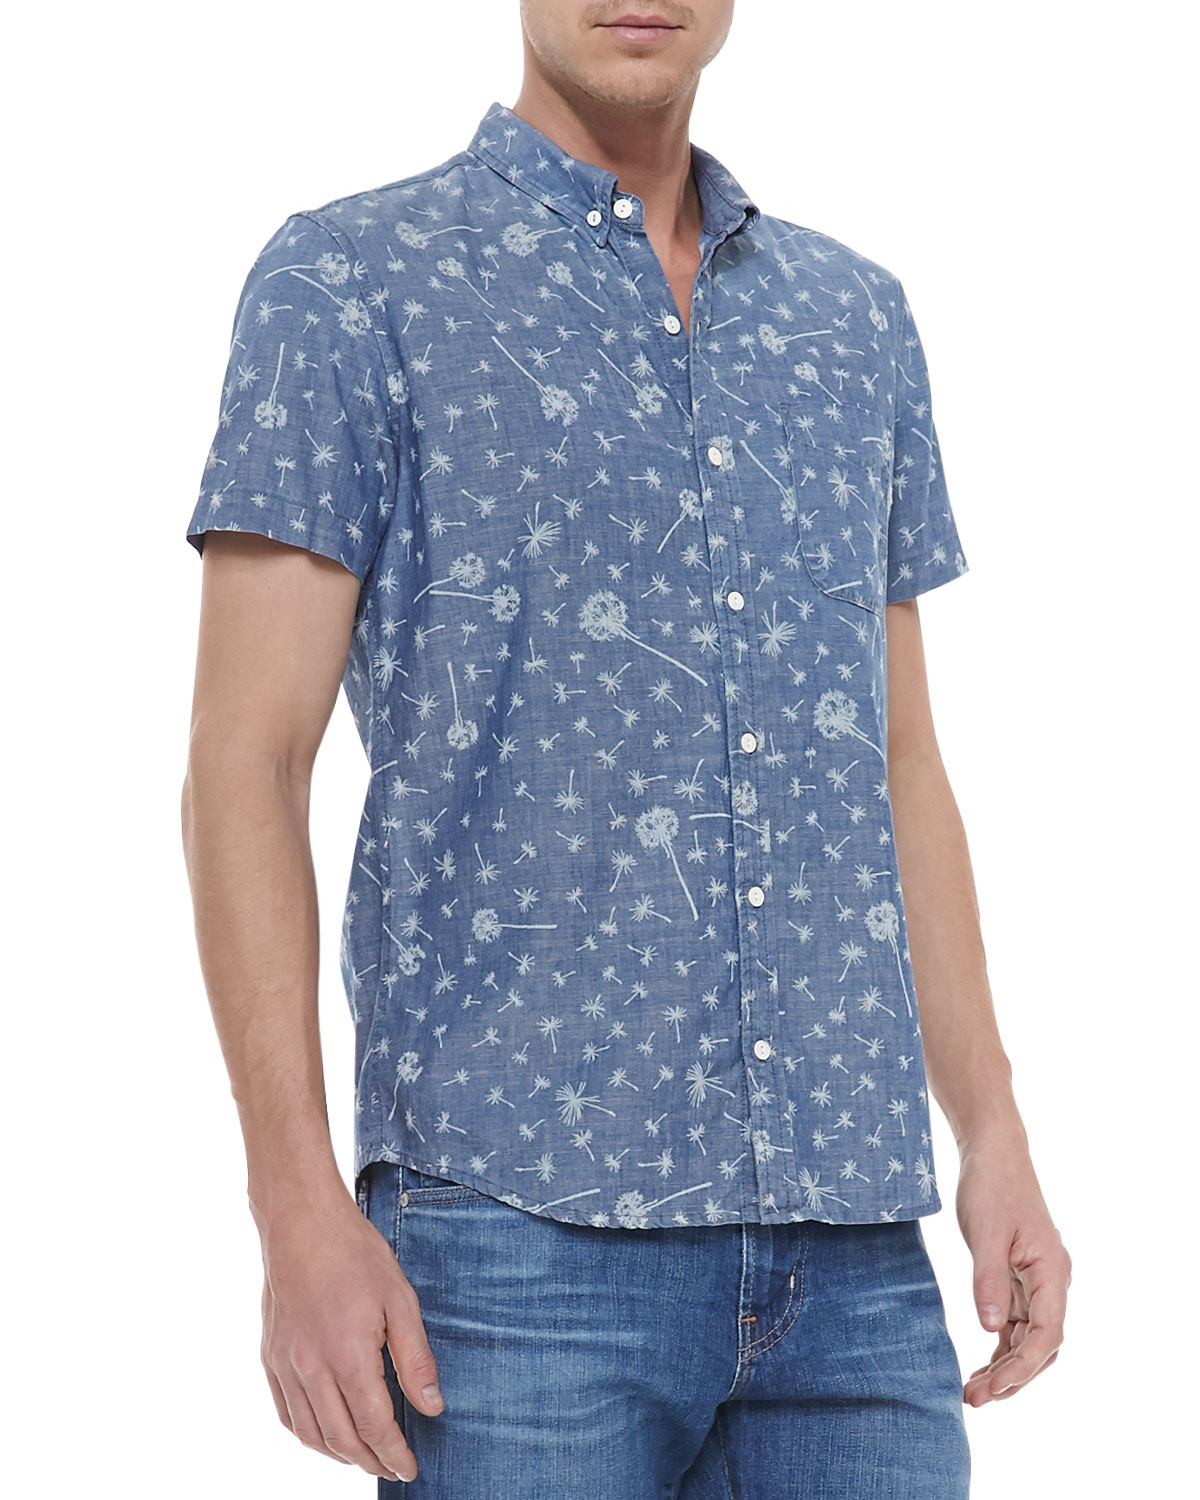 Mens Dandelion Print Short Sleeve Button Front Shirt, Blue   AG Adriano